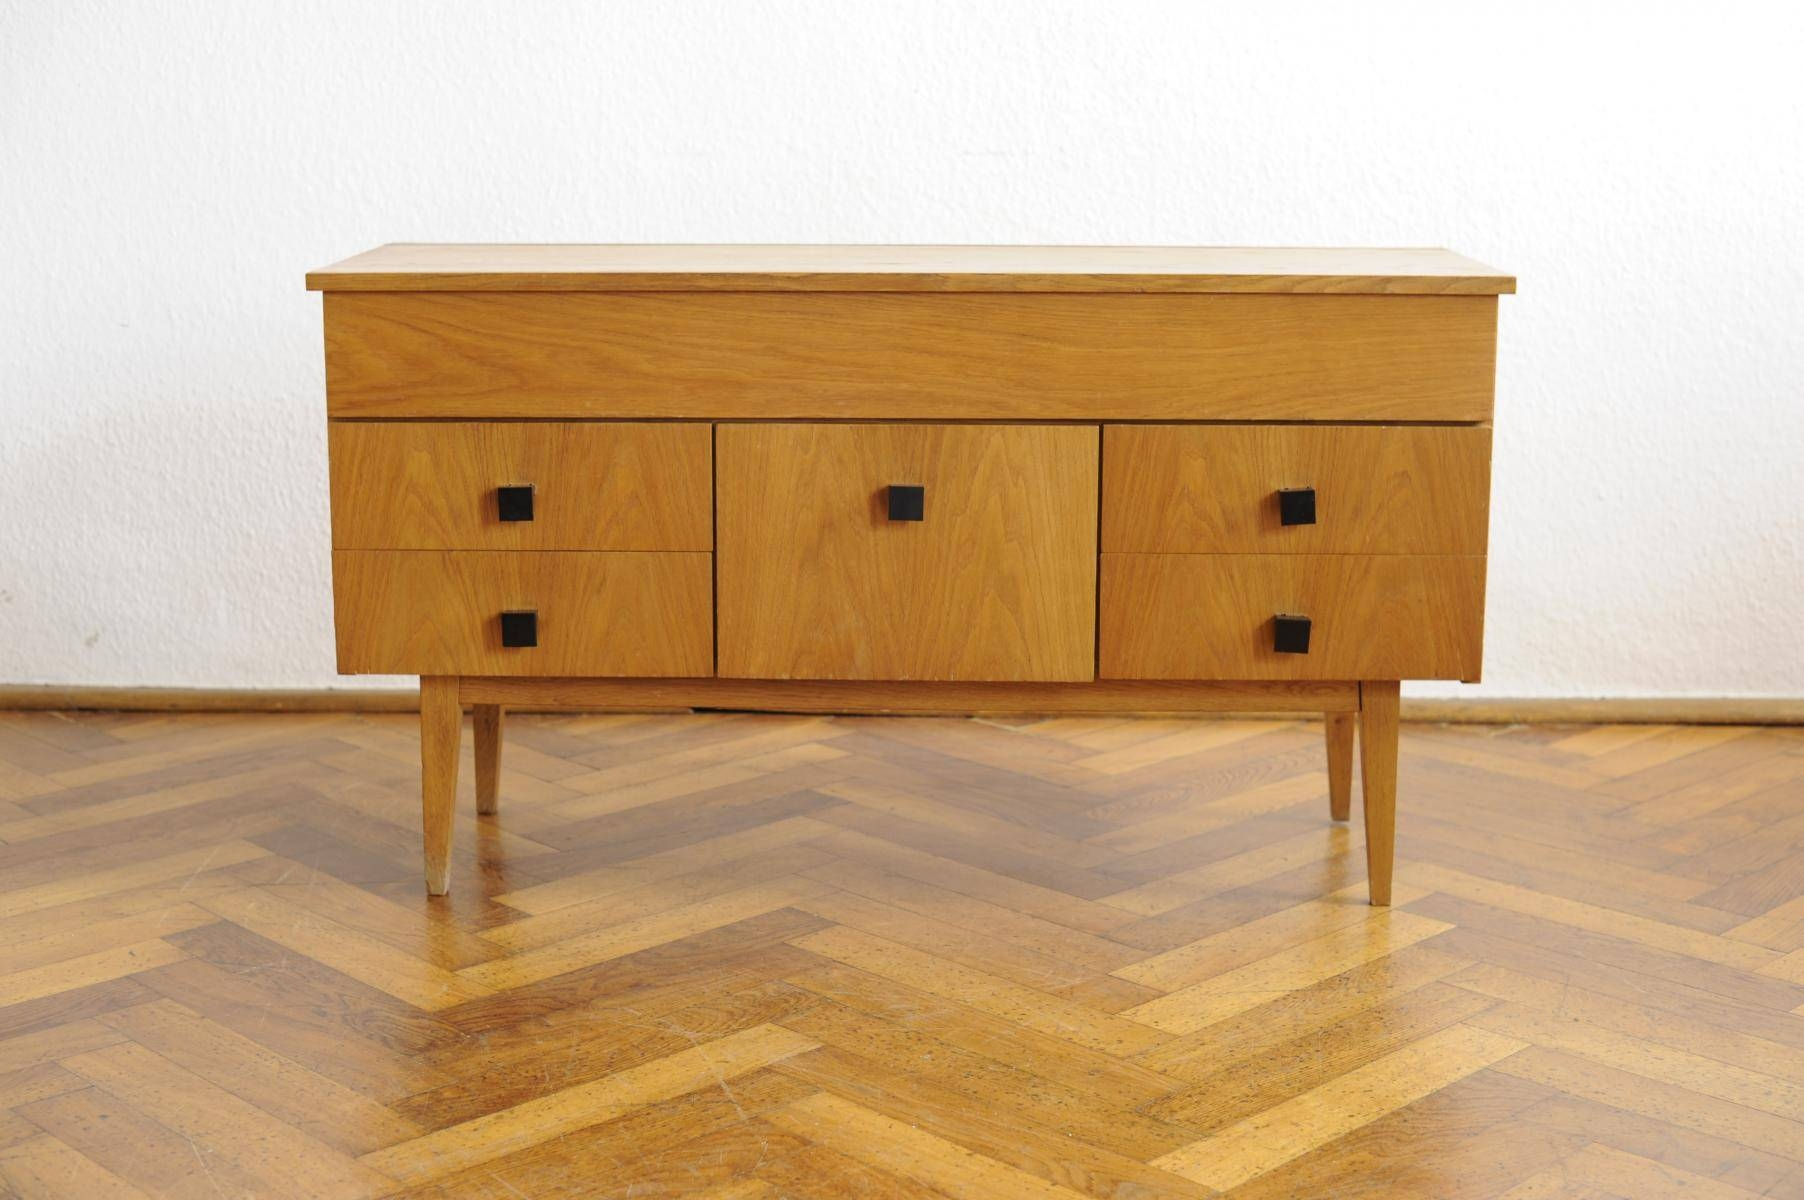 Vintage Modernist Sideboard With Beech Veneer For Sale At Pamono regarding Beech Sideboards (Image 29 of 30)